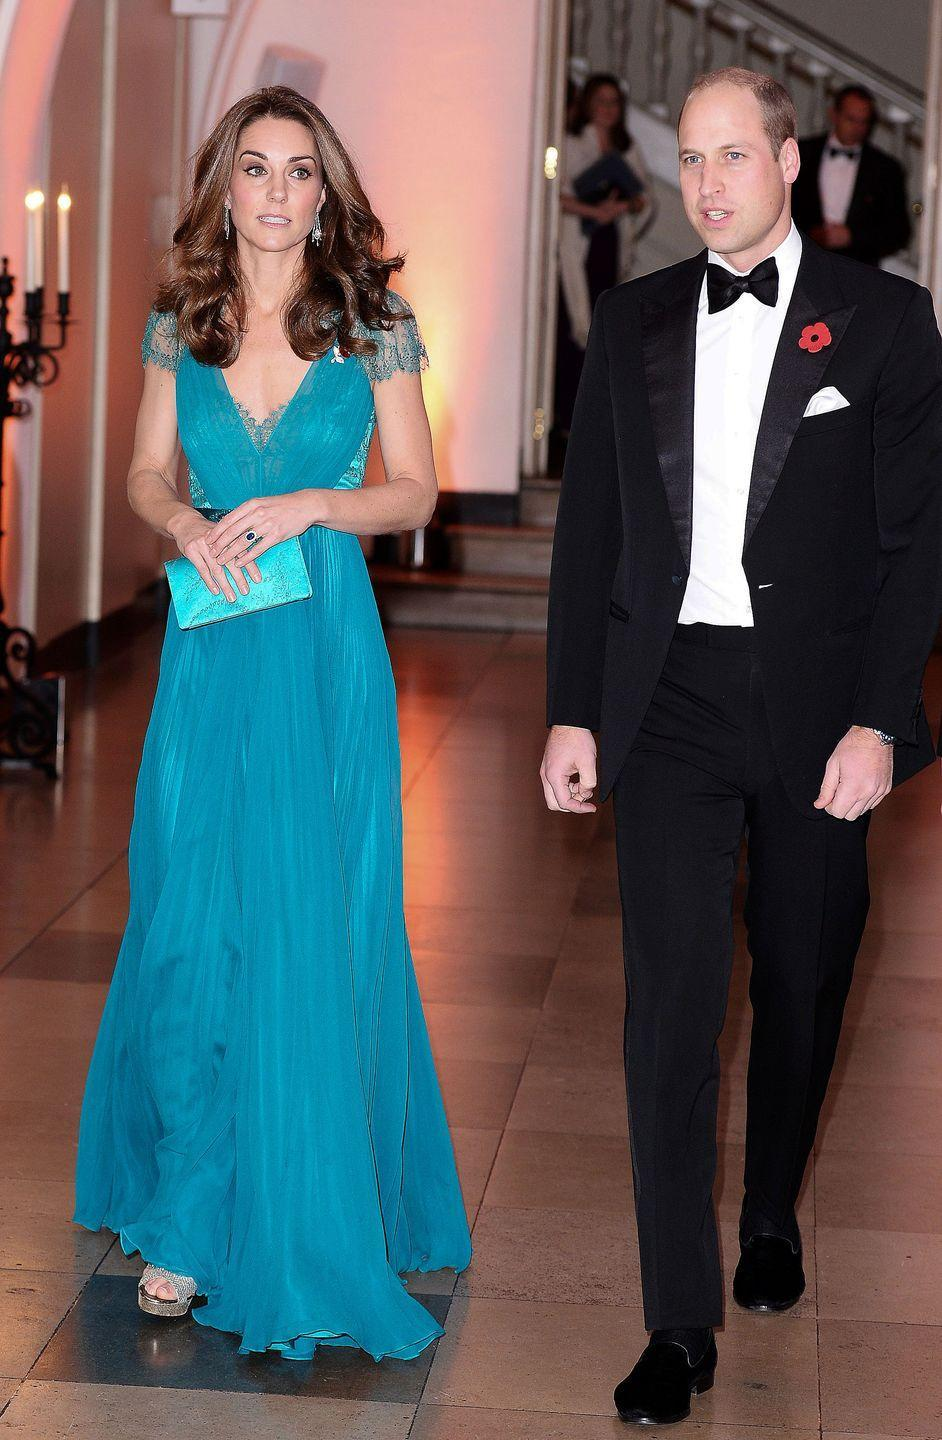 "<p>The Duchess of Cambridge recycled <a href=""https://www.townandcountrymag.com/style/fashion-trends/a24753075/kate-middleton-jenny-packham-dress-tusk-conservation-awards-2018-photos/"" rel=""nofollow noopener"" target=""_blank"" data-ylk=""slk:a teal Jenny Packham gown"" class=""link rapid-noclick-resp"">a teal Jenny Packham gown</a> for the Tusk Conservation Awards, which were held in London. Kate first wore the stunning dress in 2012.</p>"